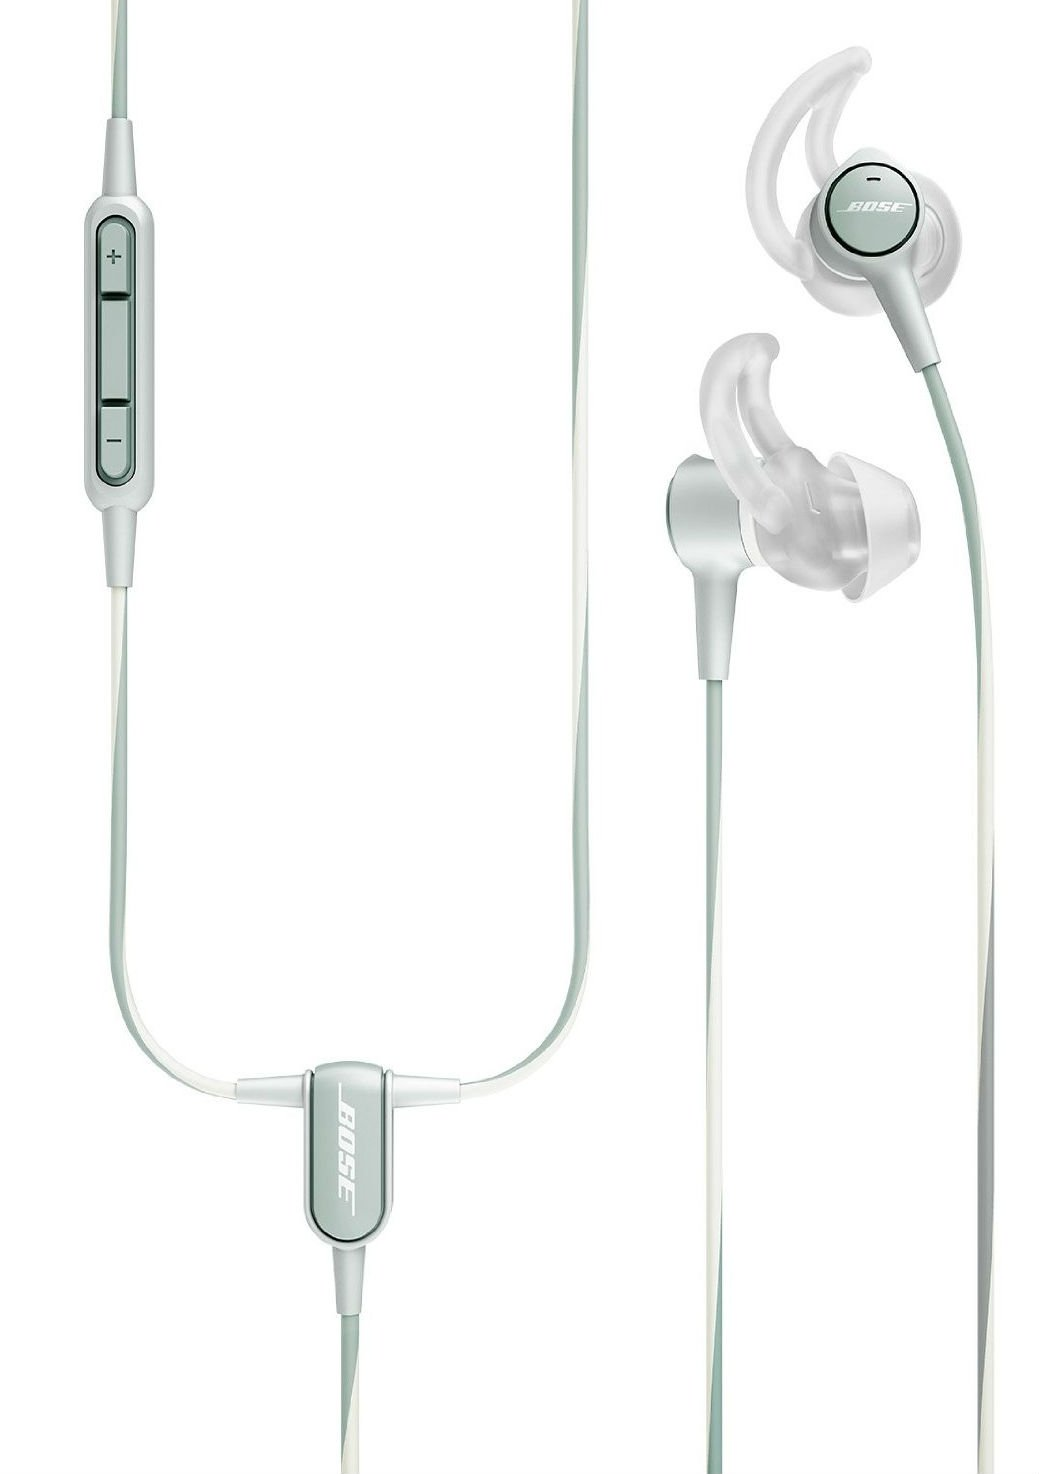 Наушники BOSE SoundTrue in-ear MFI - White, картинка 2